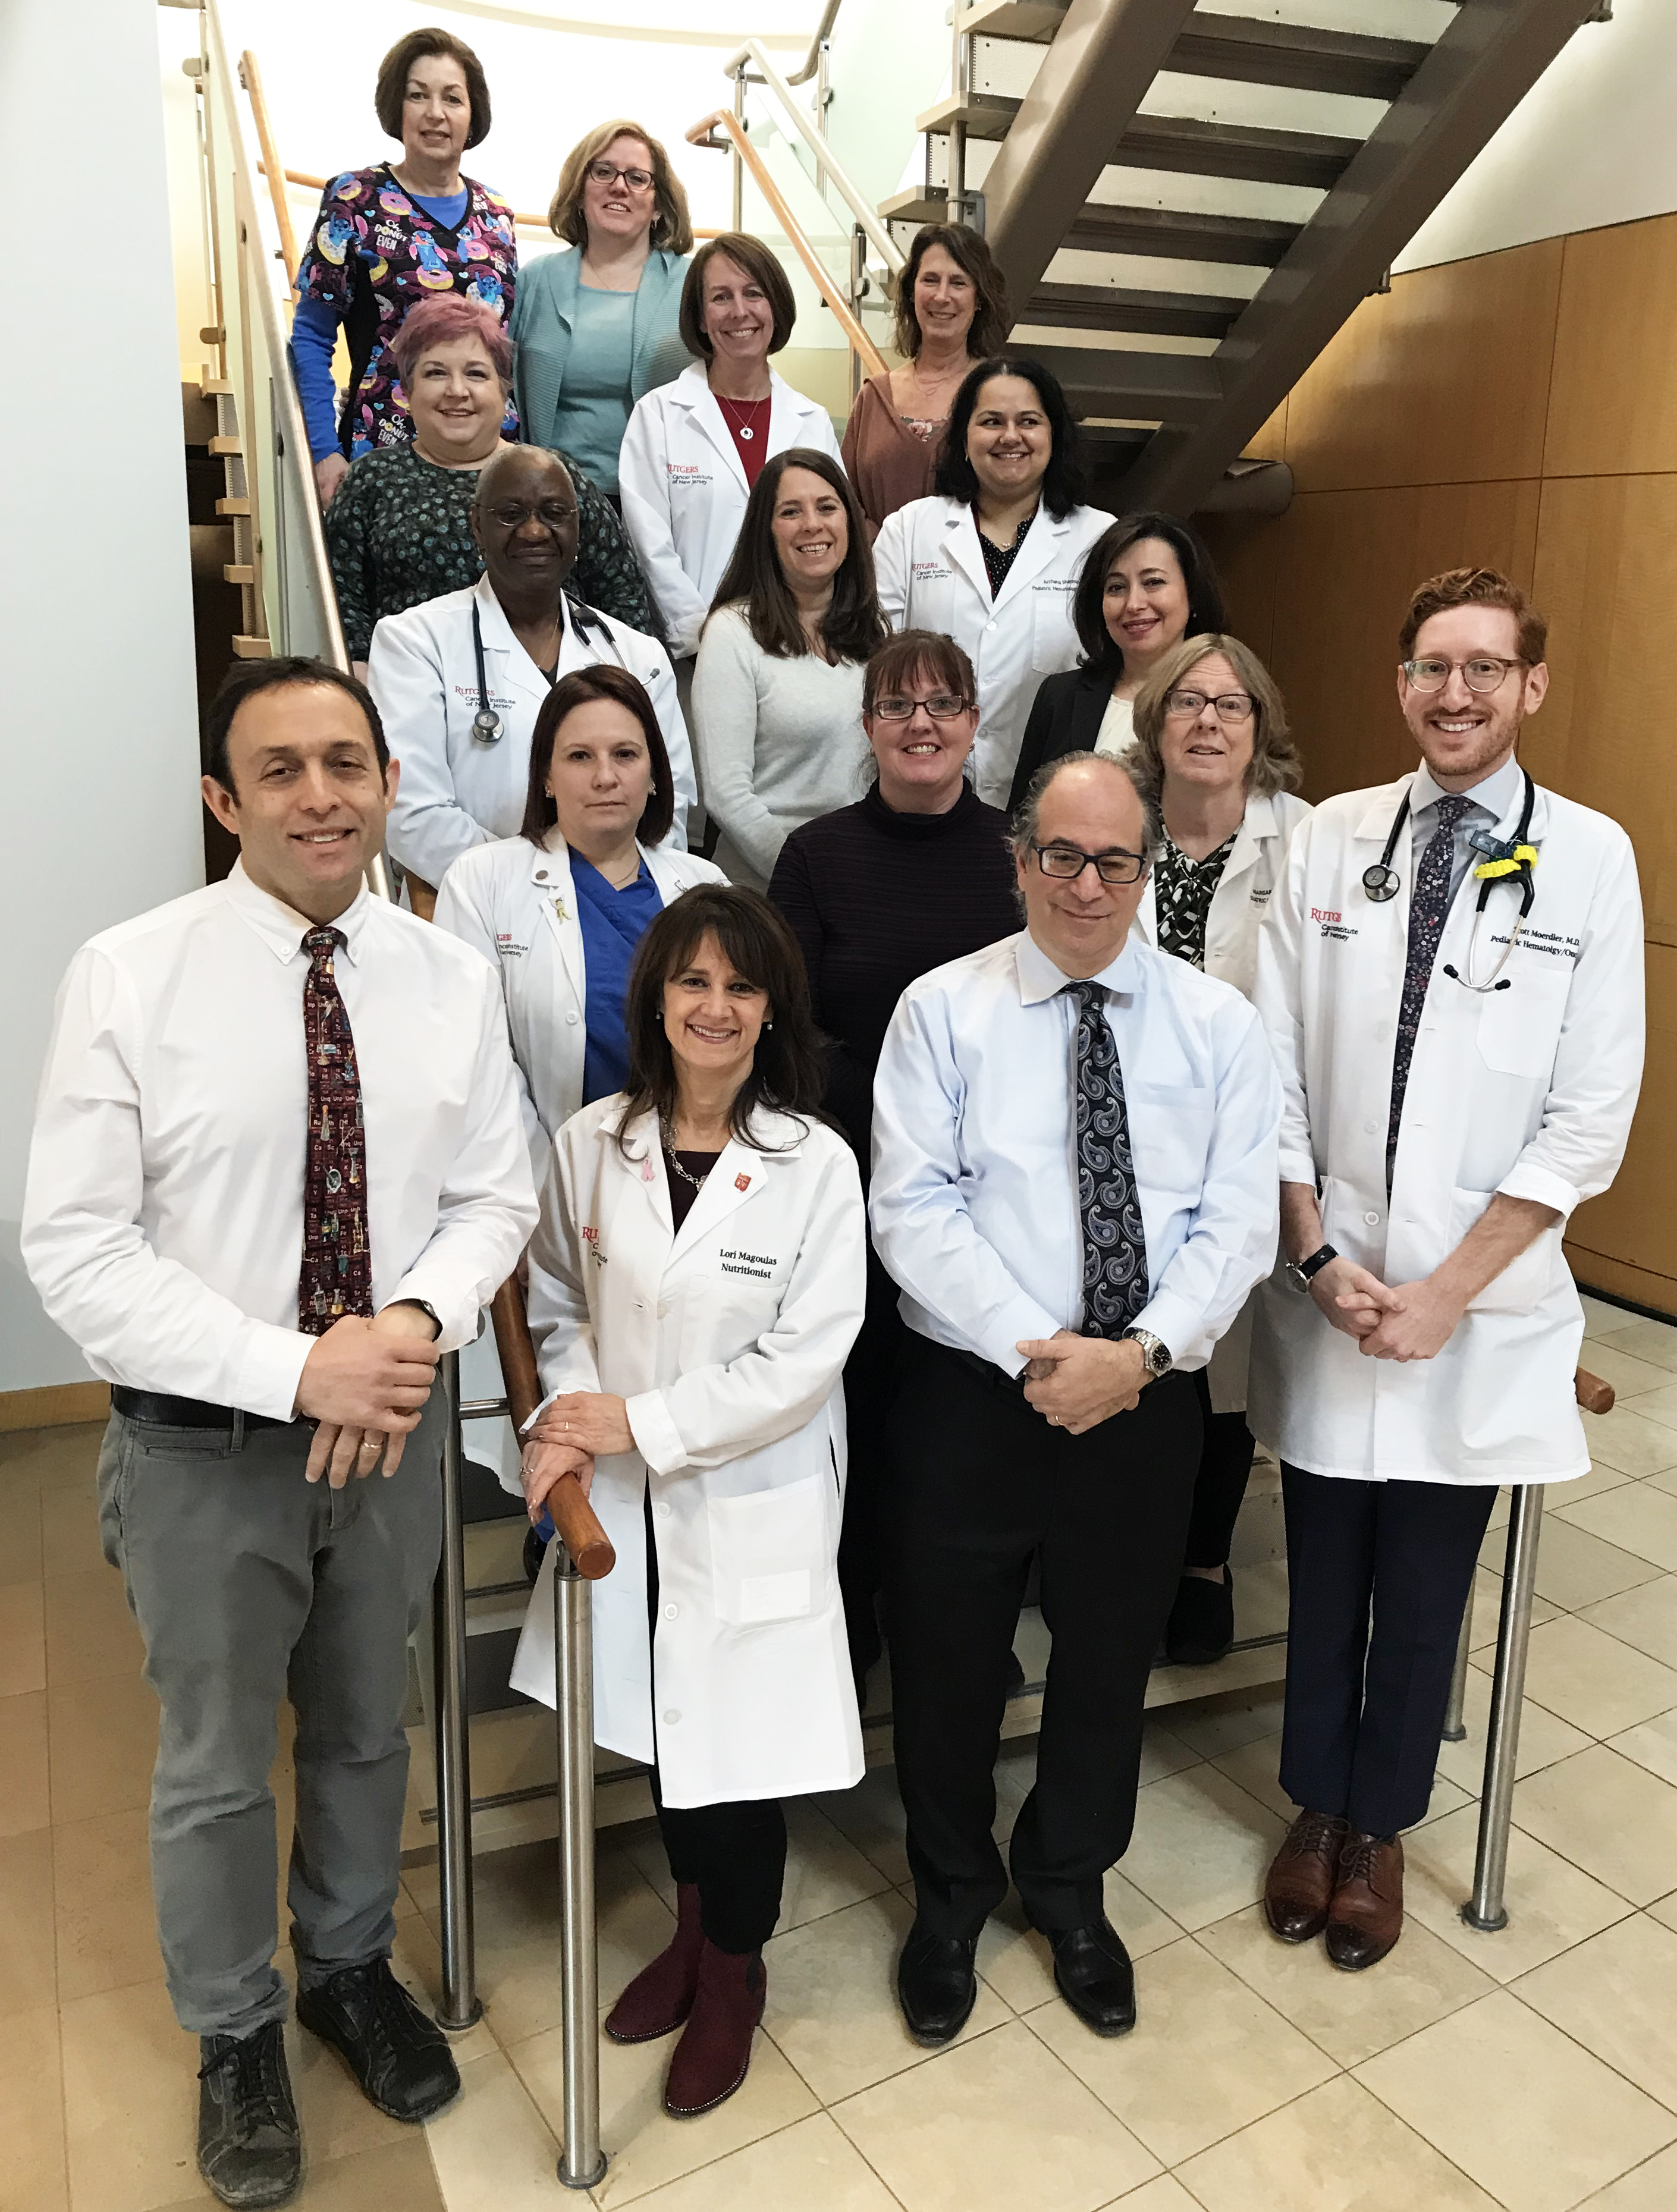 Pediatrics Program at The Cancer Institute of New Jersey